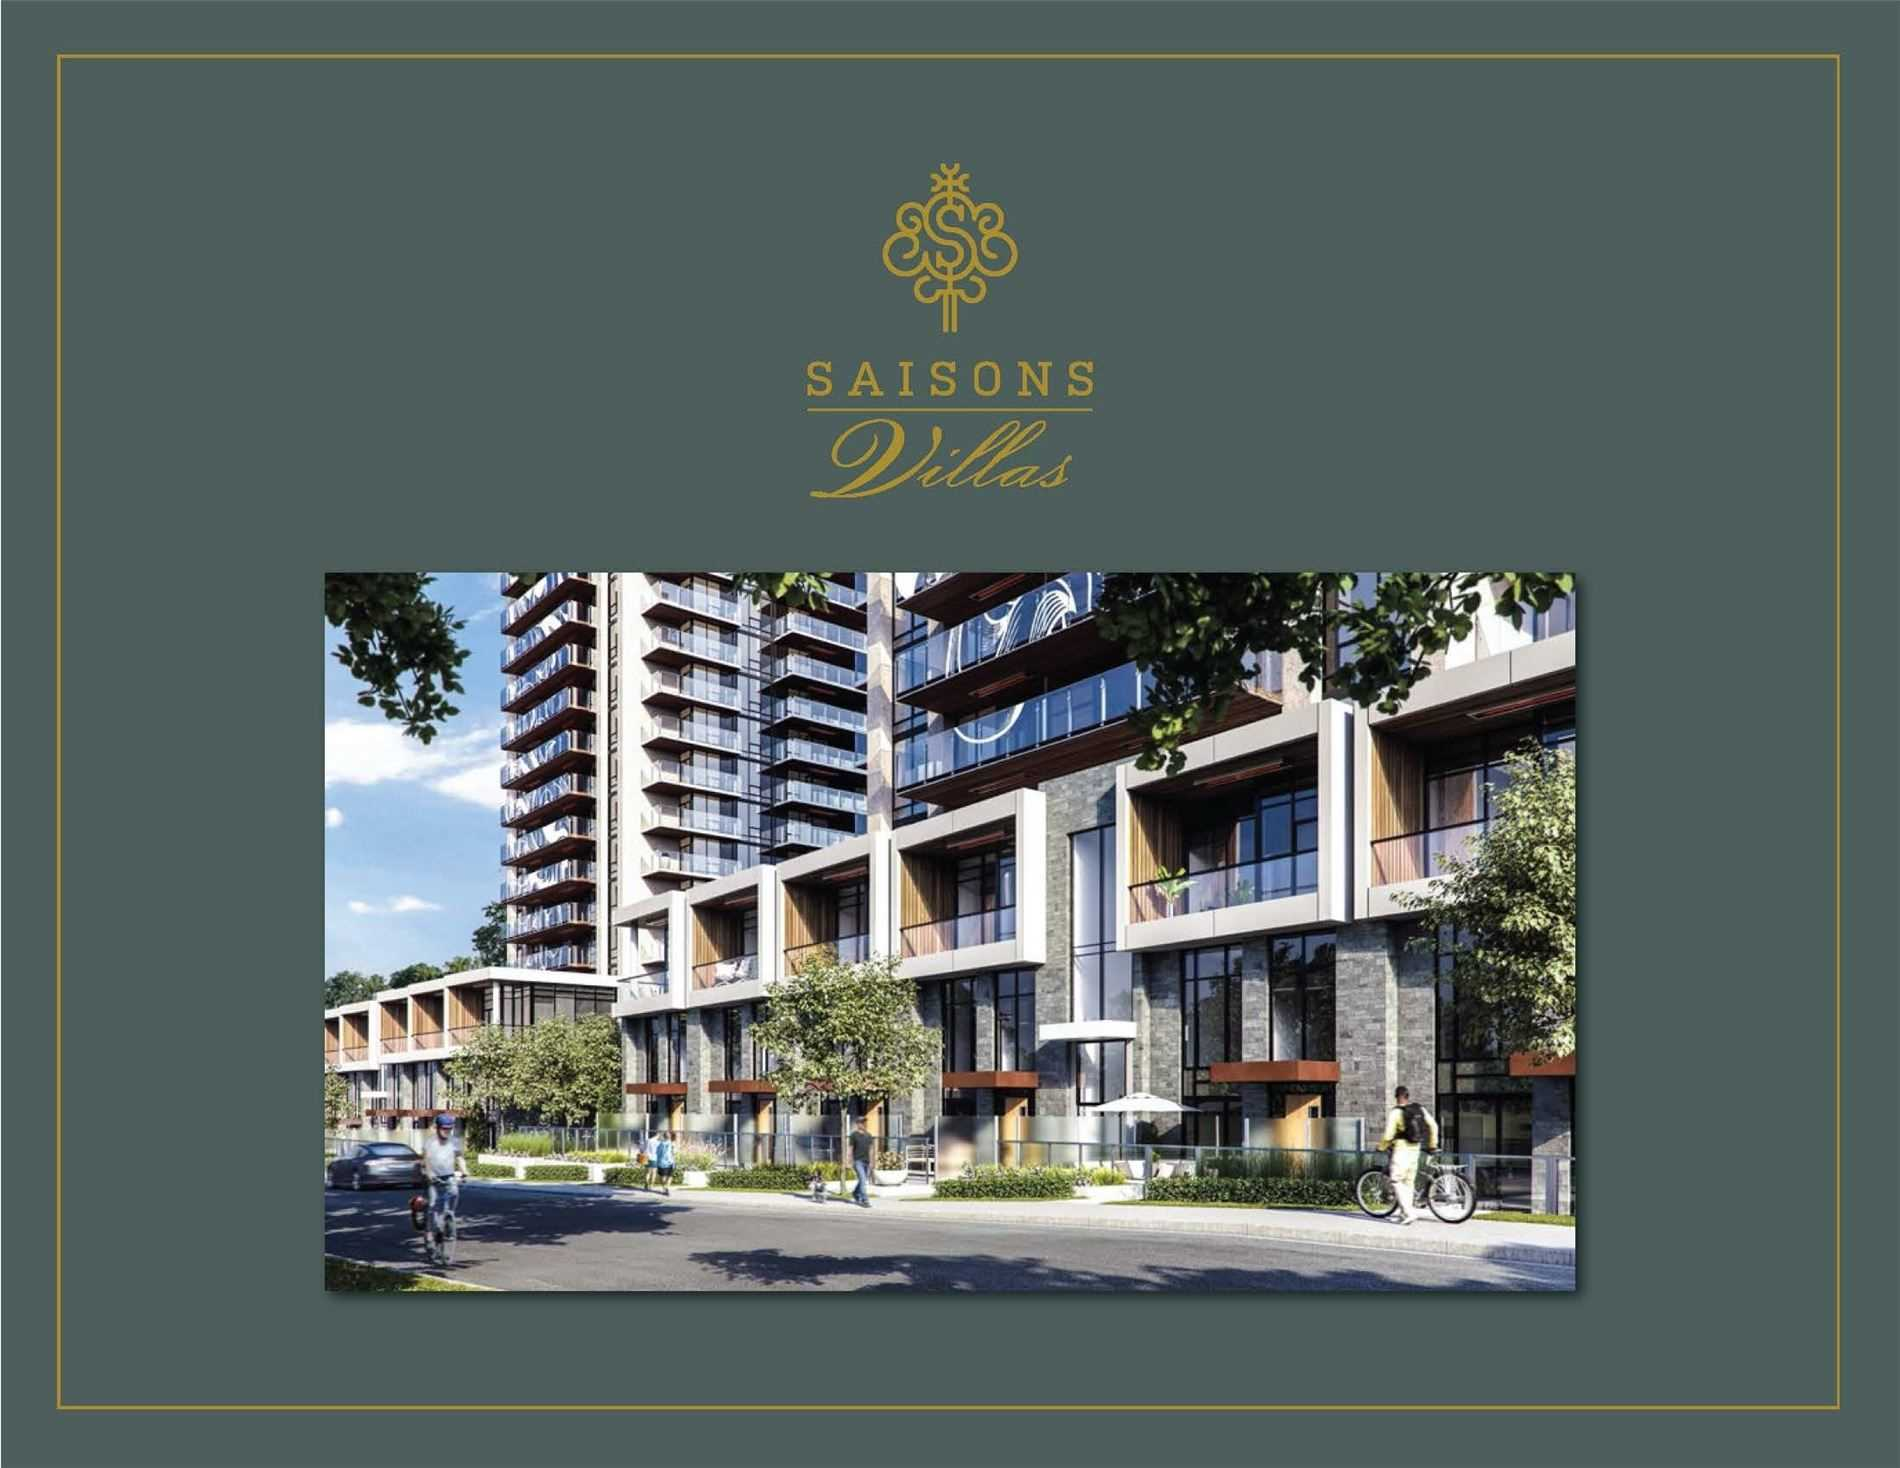 Condo Townhouse For Sale In Toronto , 3 Bedrooms Bedrooms, ,2 BathroomsBathrooms,Condo Townhouse,For Sale,312,Mcmahon